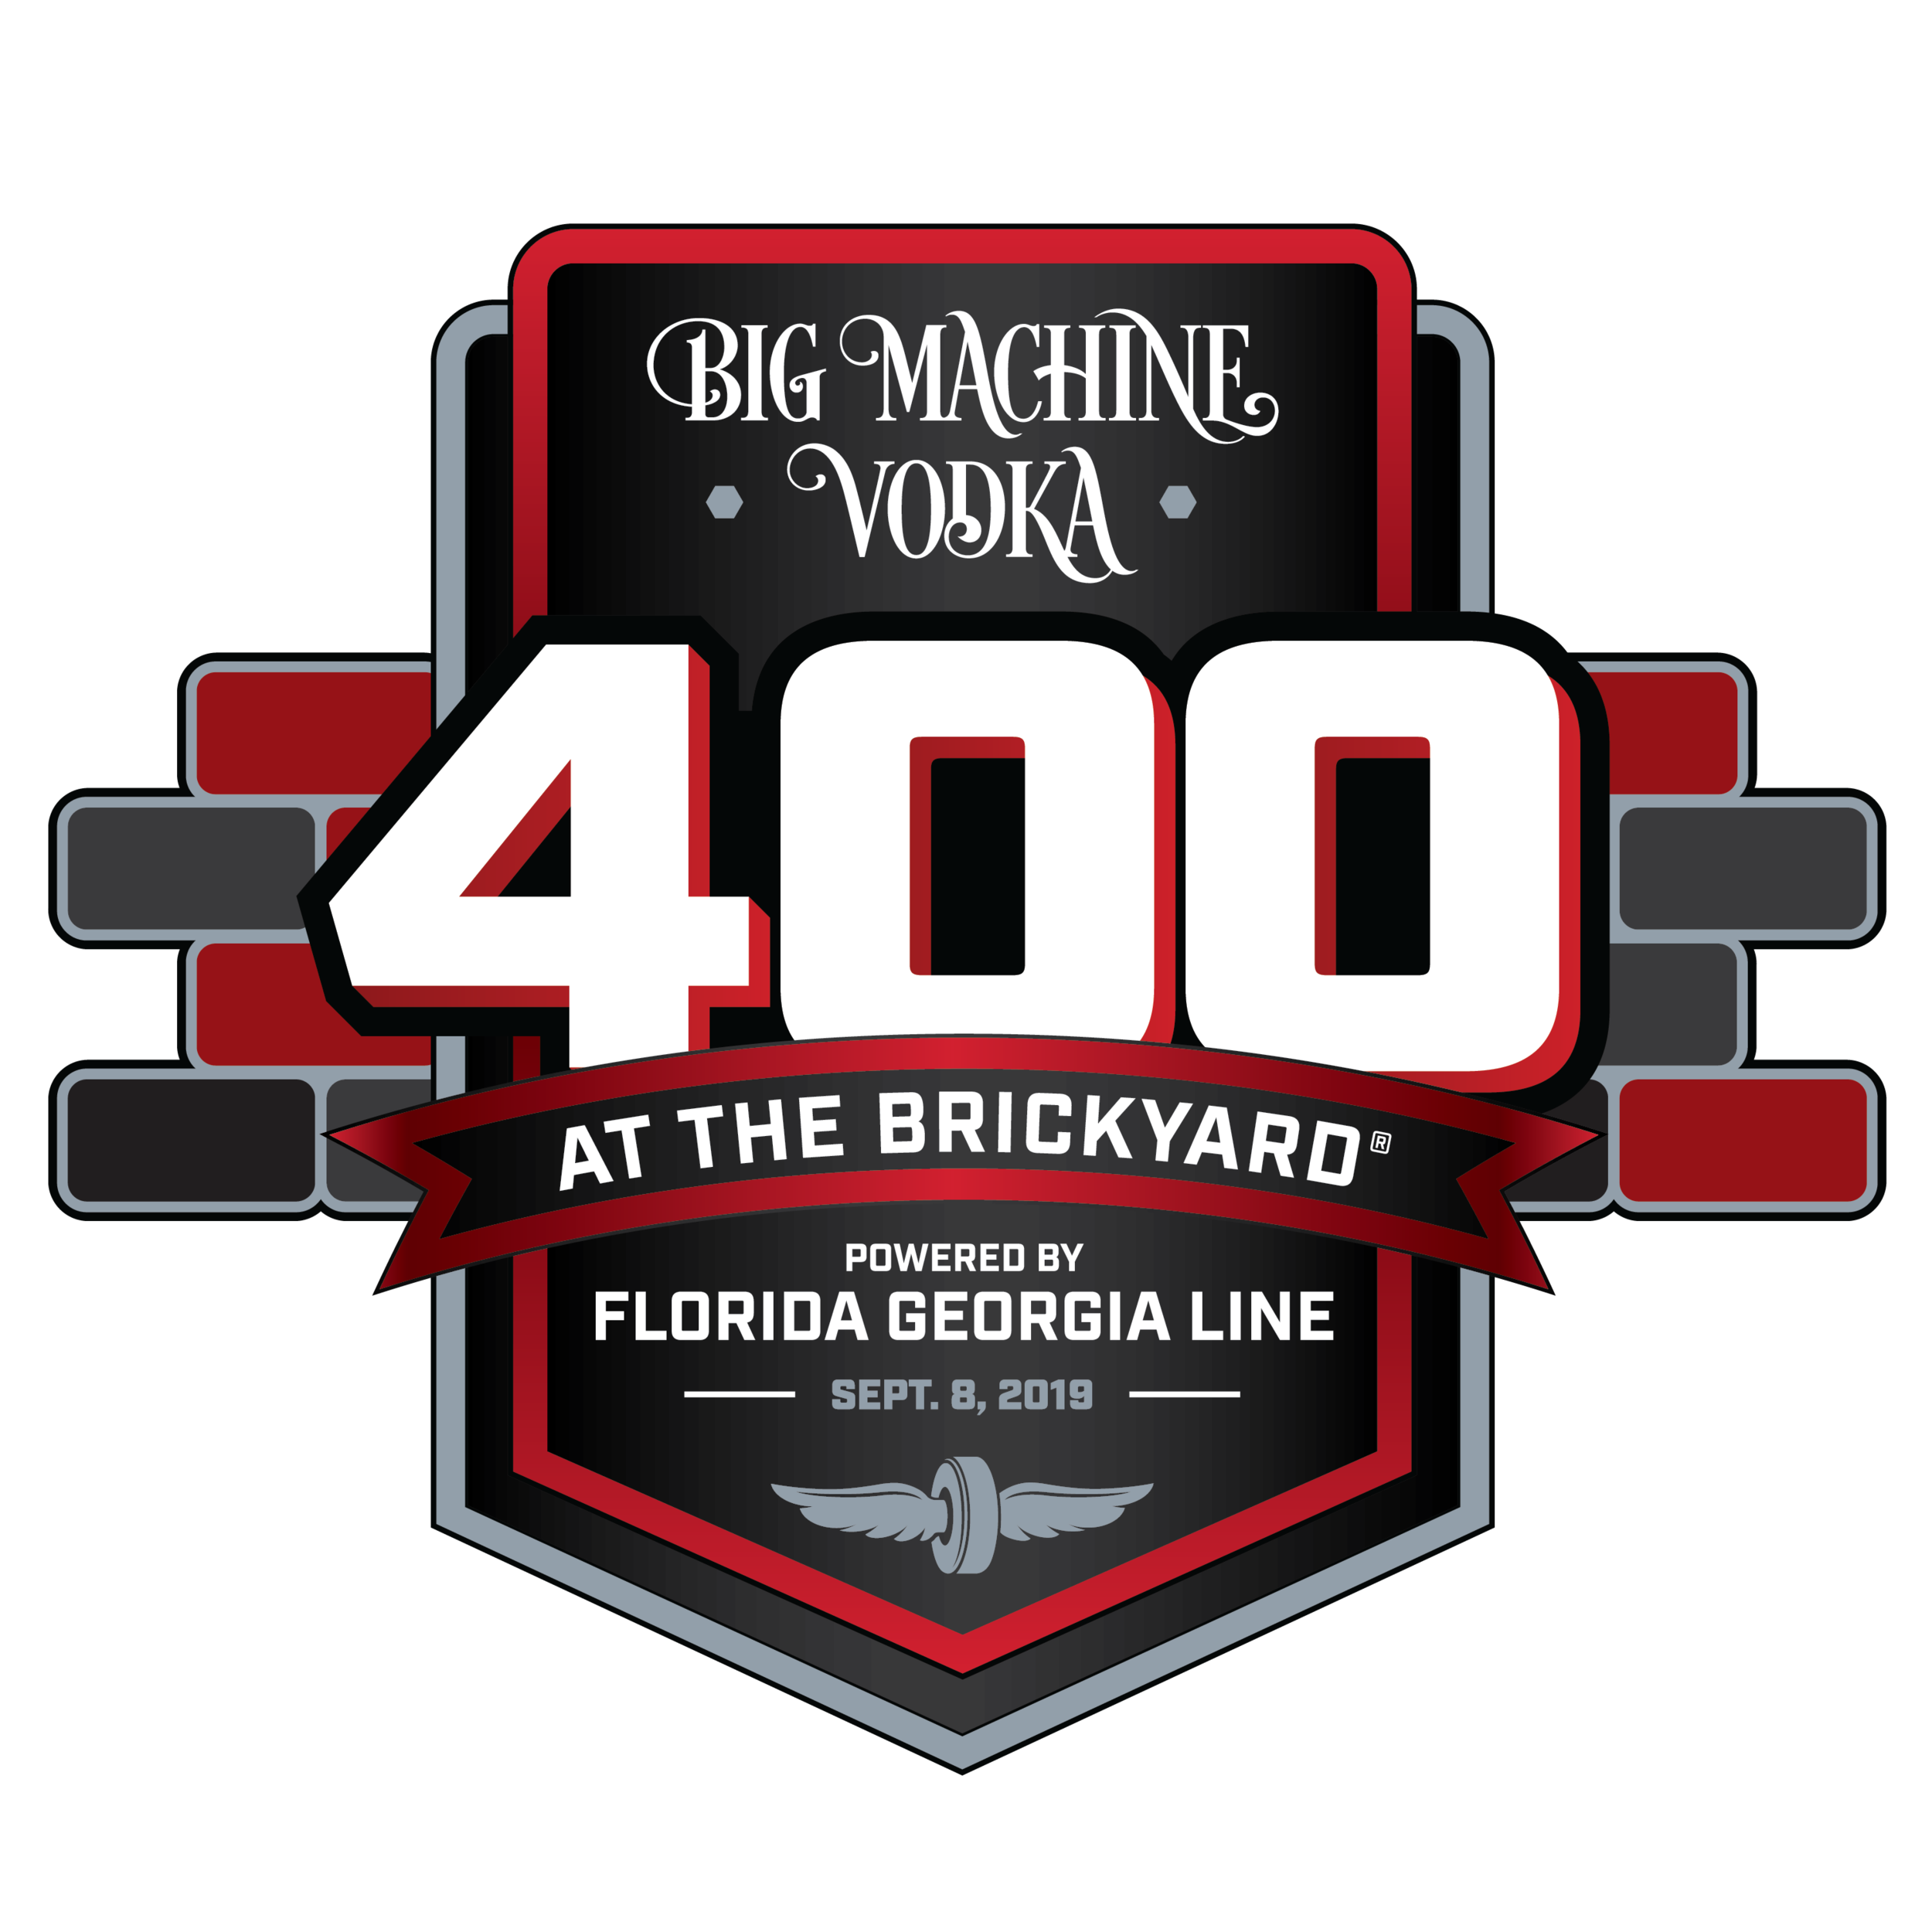 Big Machine Vodka 400 at the brickyard powered by Florida Georgia line - To kick off distribution of Big Machine Vodka in Indiana, Country Music's hottest duo Florida Georgia Line, 2018 Daytona 500 Winner Austin Dillon and other celebrities joined Tenn South Distillery executives in Indianapolis. They also announced a three year partnership as entitlement sponsors of Indianapolis Motor Speedway's iconic NASCAR race.